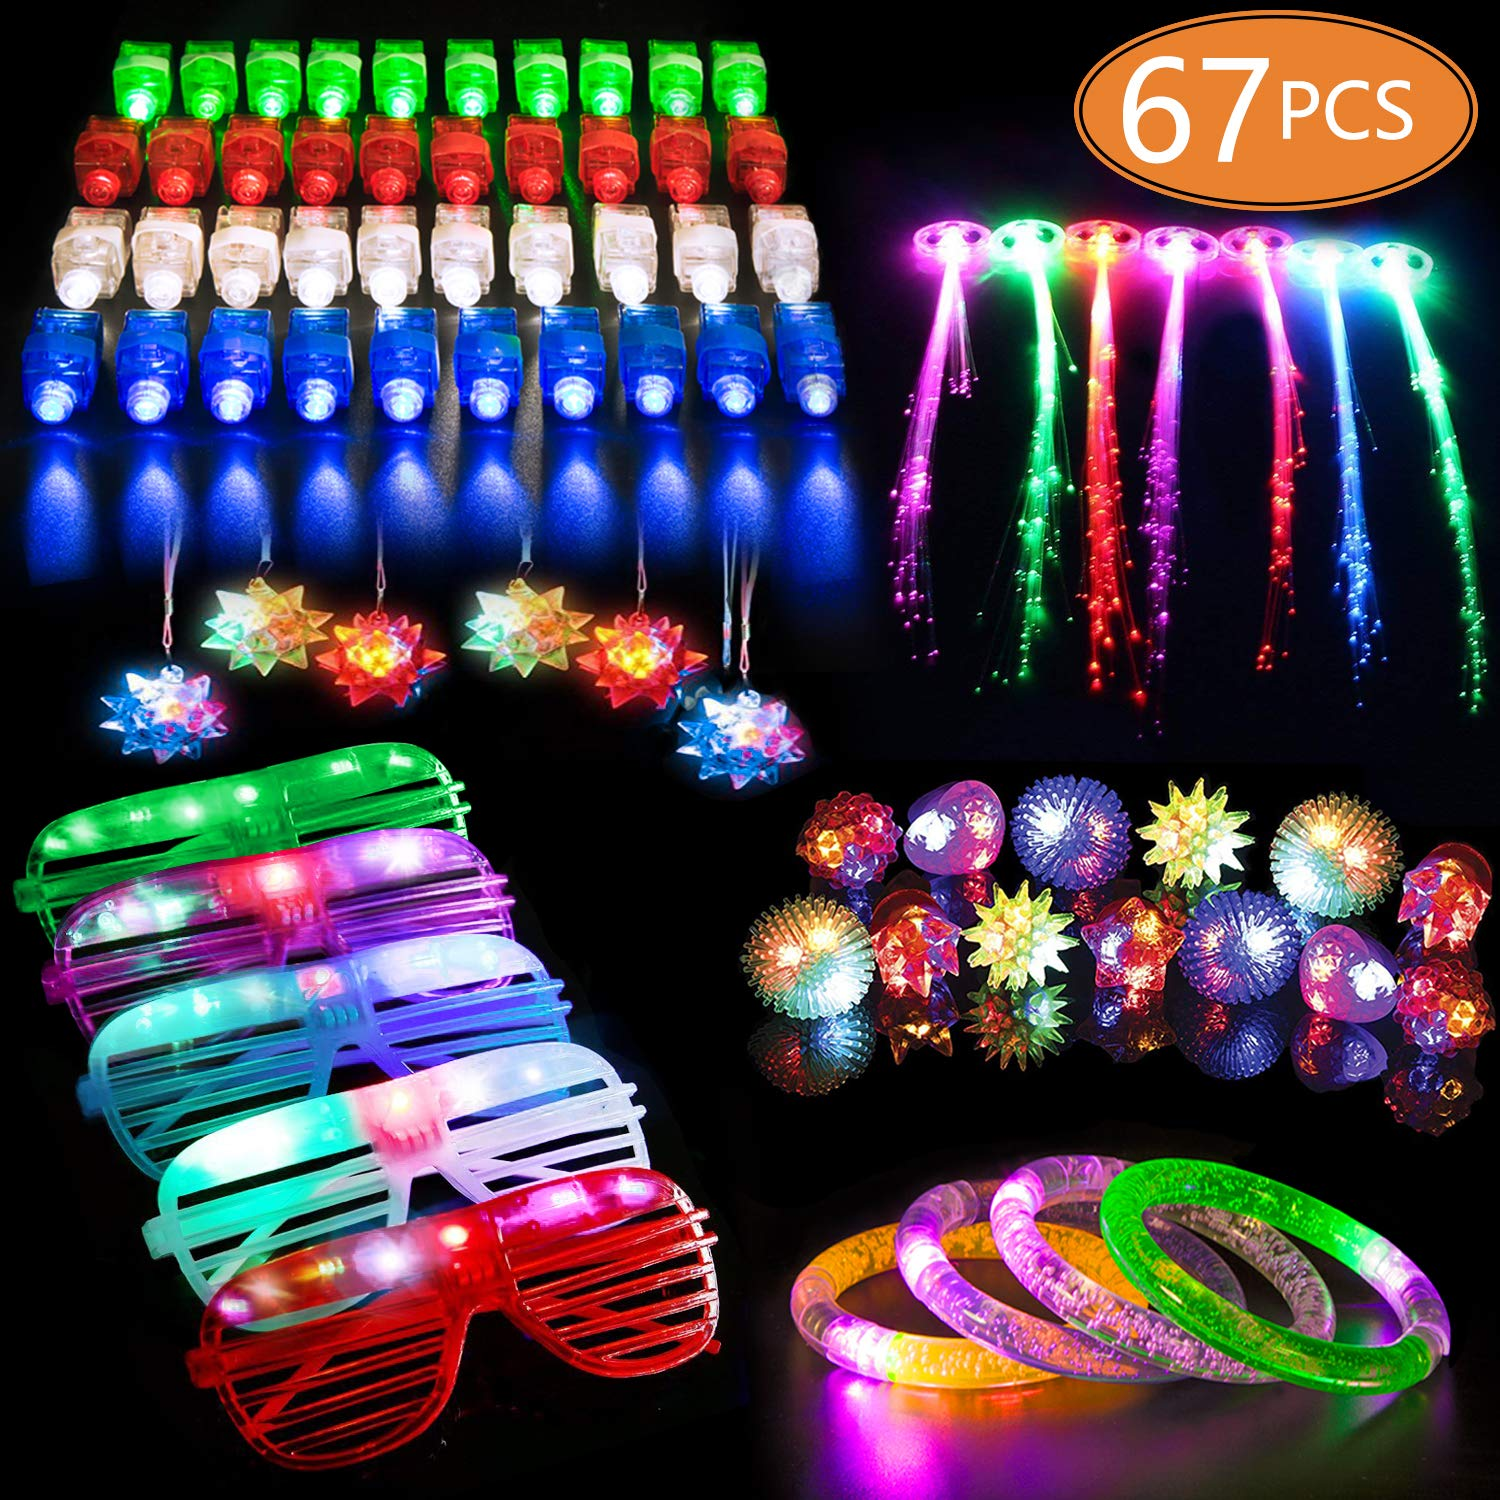 MIBOTE 67Pcs Halloween LED Light Up Toys Party Favors Glow in the Dark Party Supplies for Kid/Adults with 40 Finger Lights, 10 Jelly Rings, 5 Flashing Glasses, 4 Bracelets, 4 Fiber Optic Hair Lights and 4 Crystal Necklaces by MIBOTE